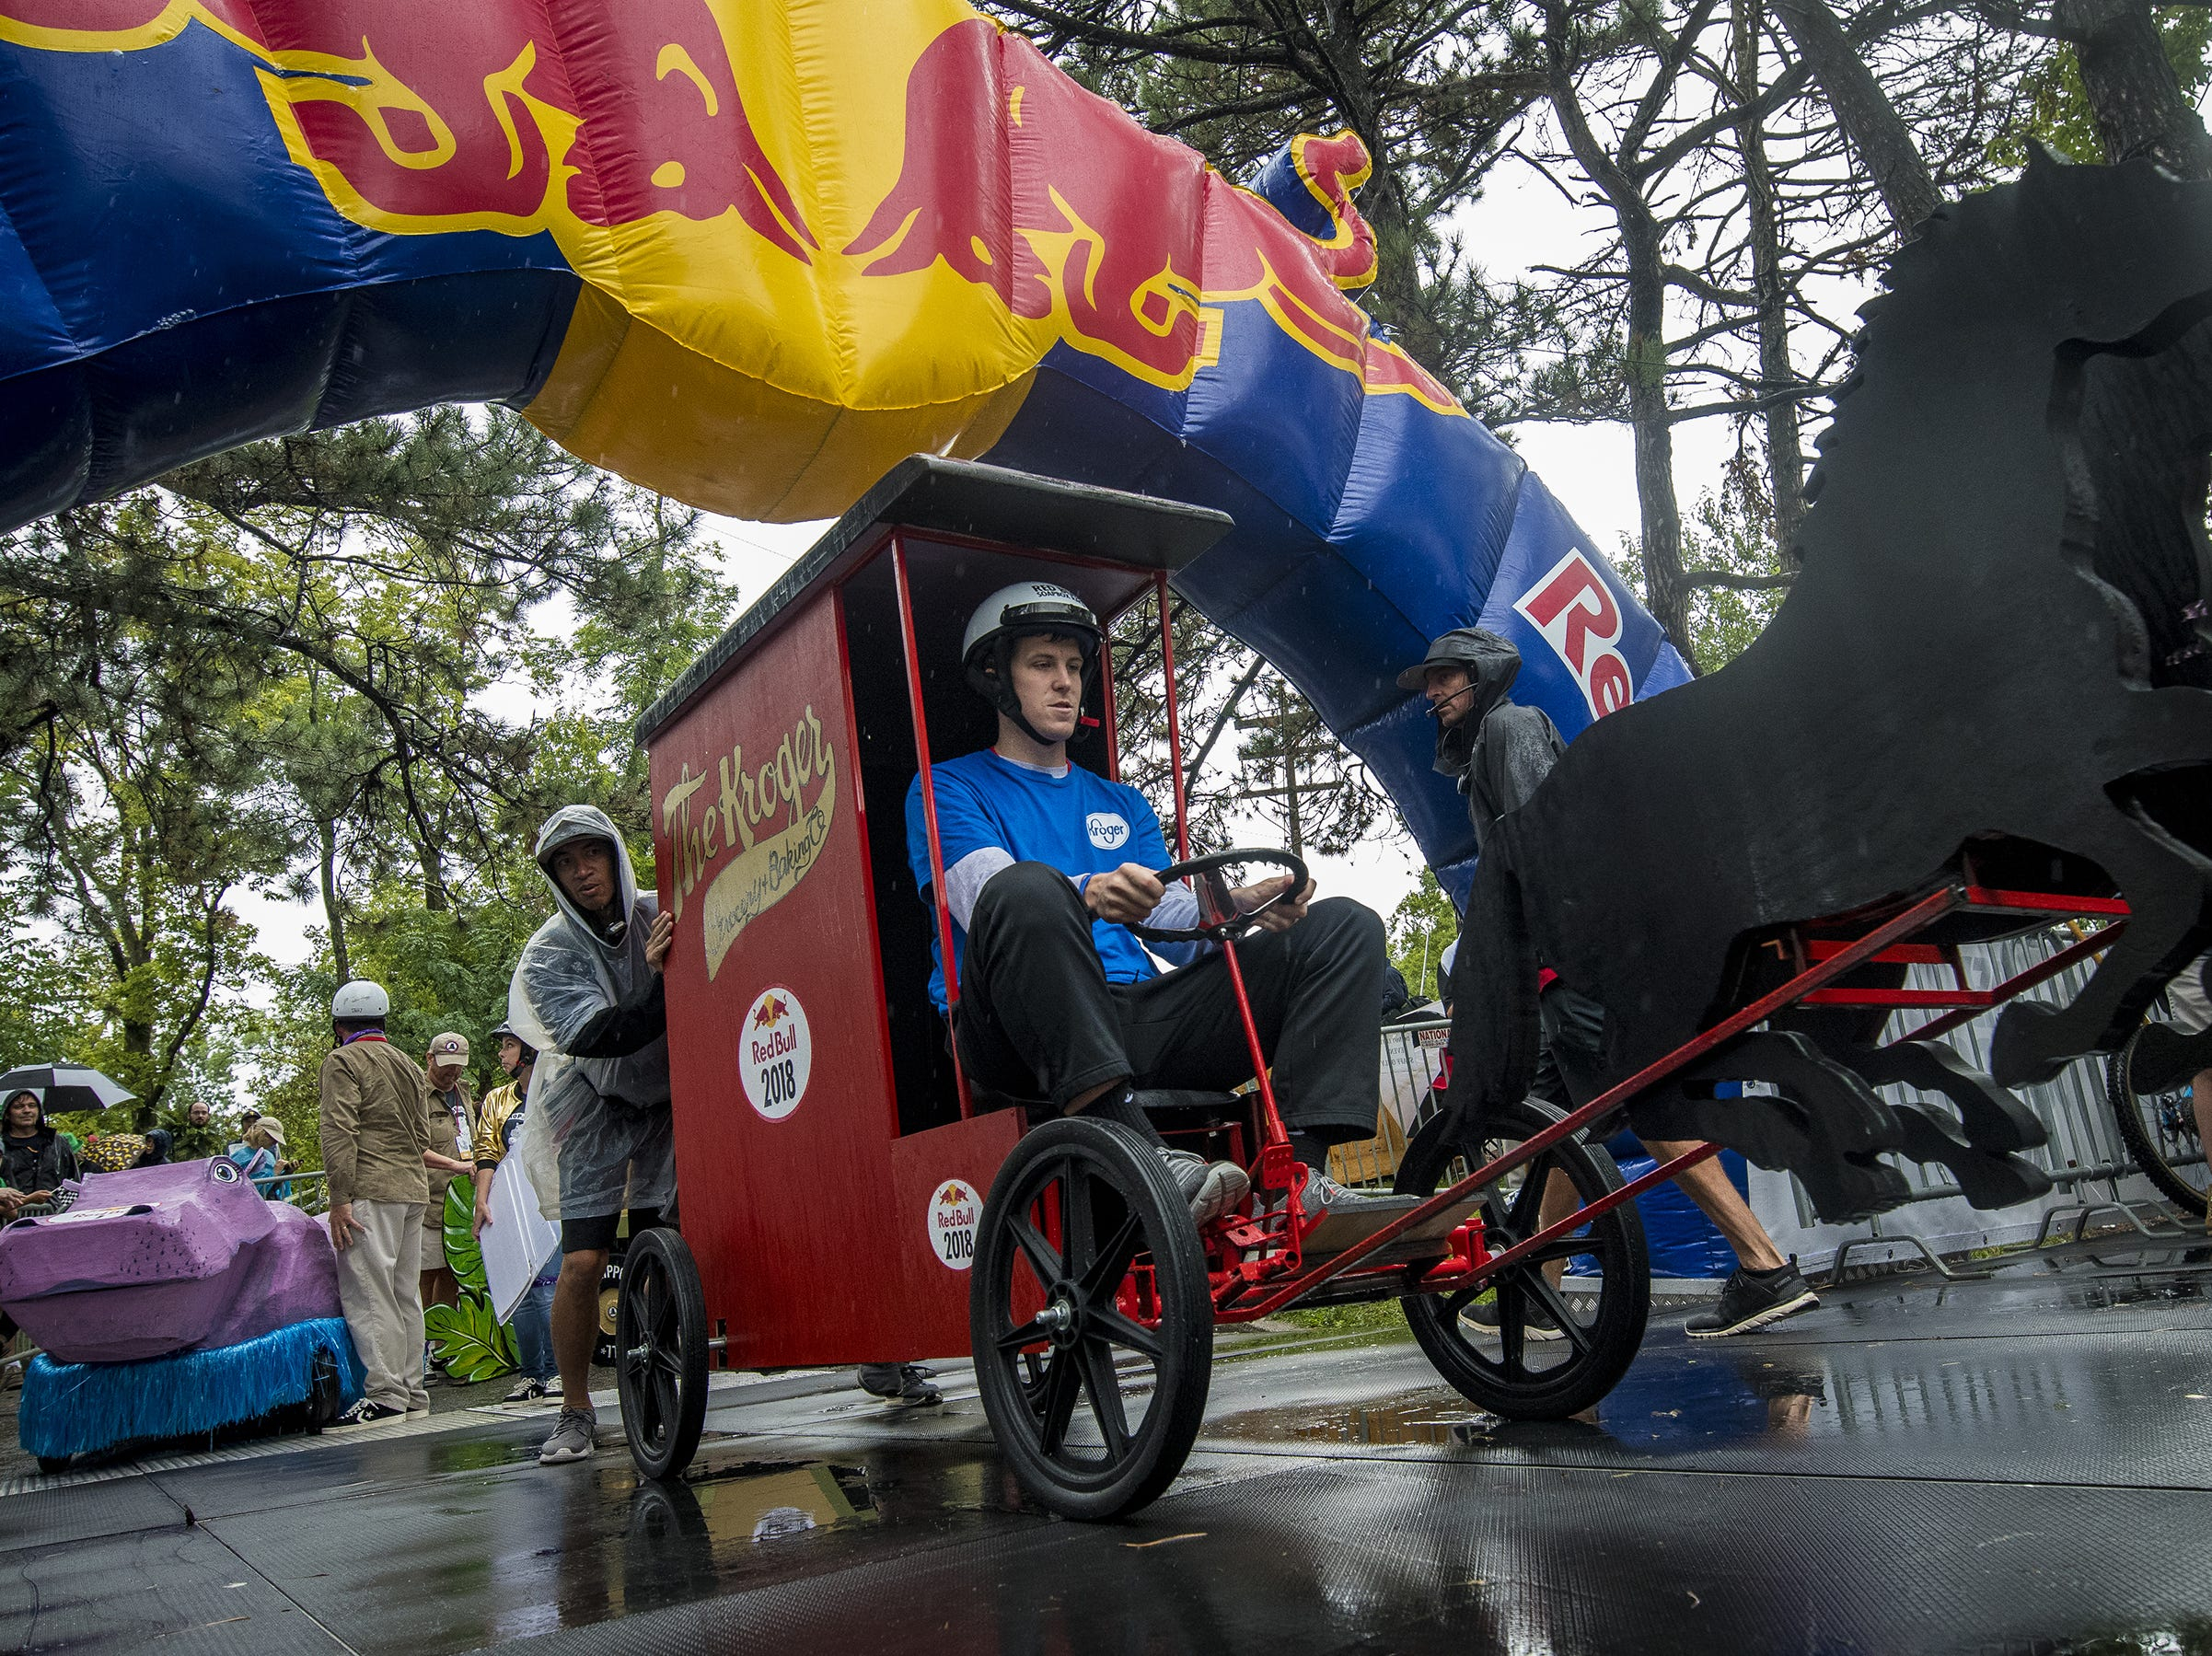 Kroger's soapbox car takes an exhibition run before the start of the Red Bull Soapbox Derby Saturday, September 8, 2018 in Cincinnati, Ohio.